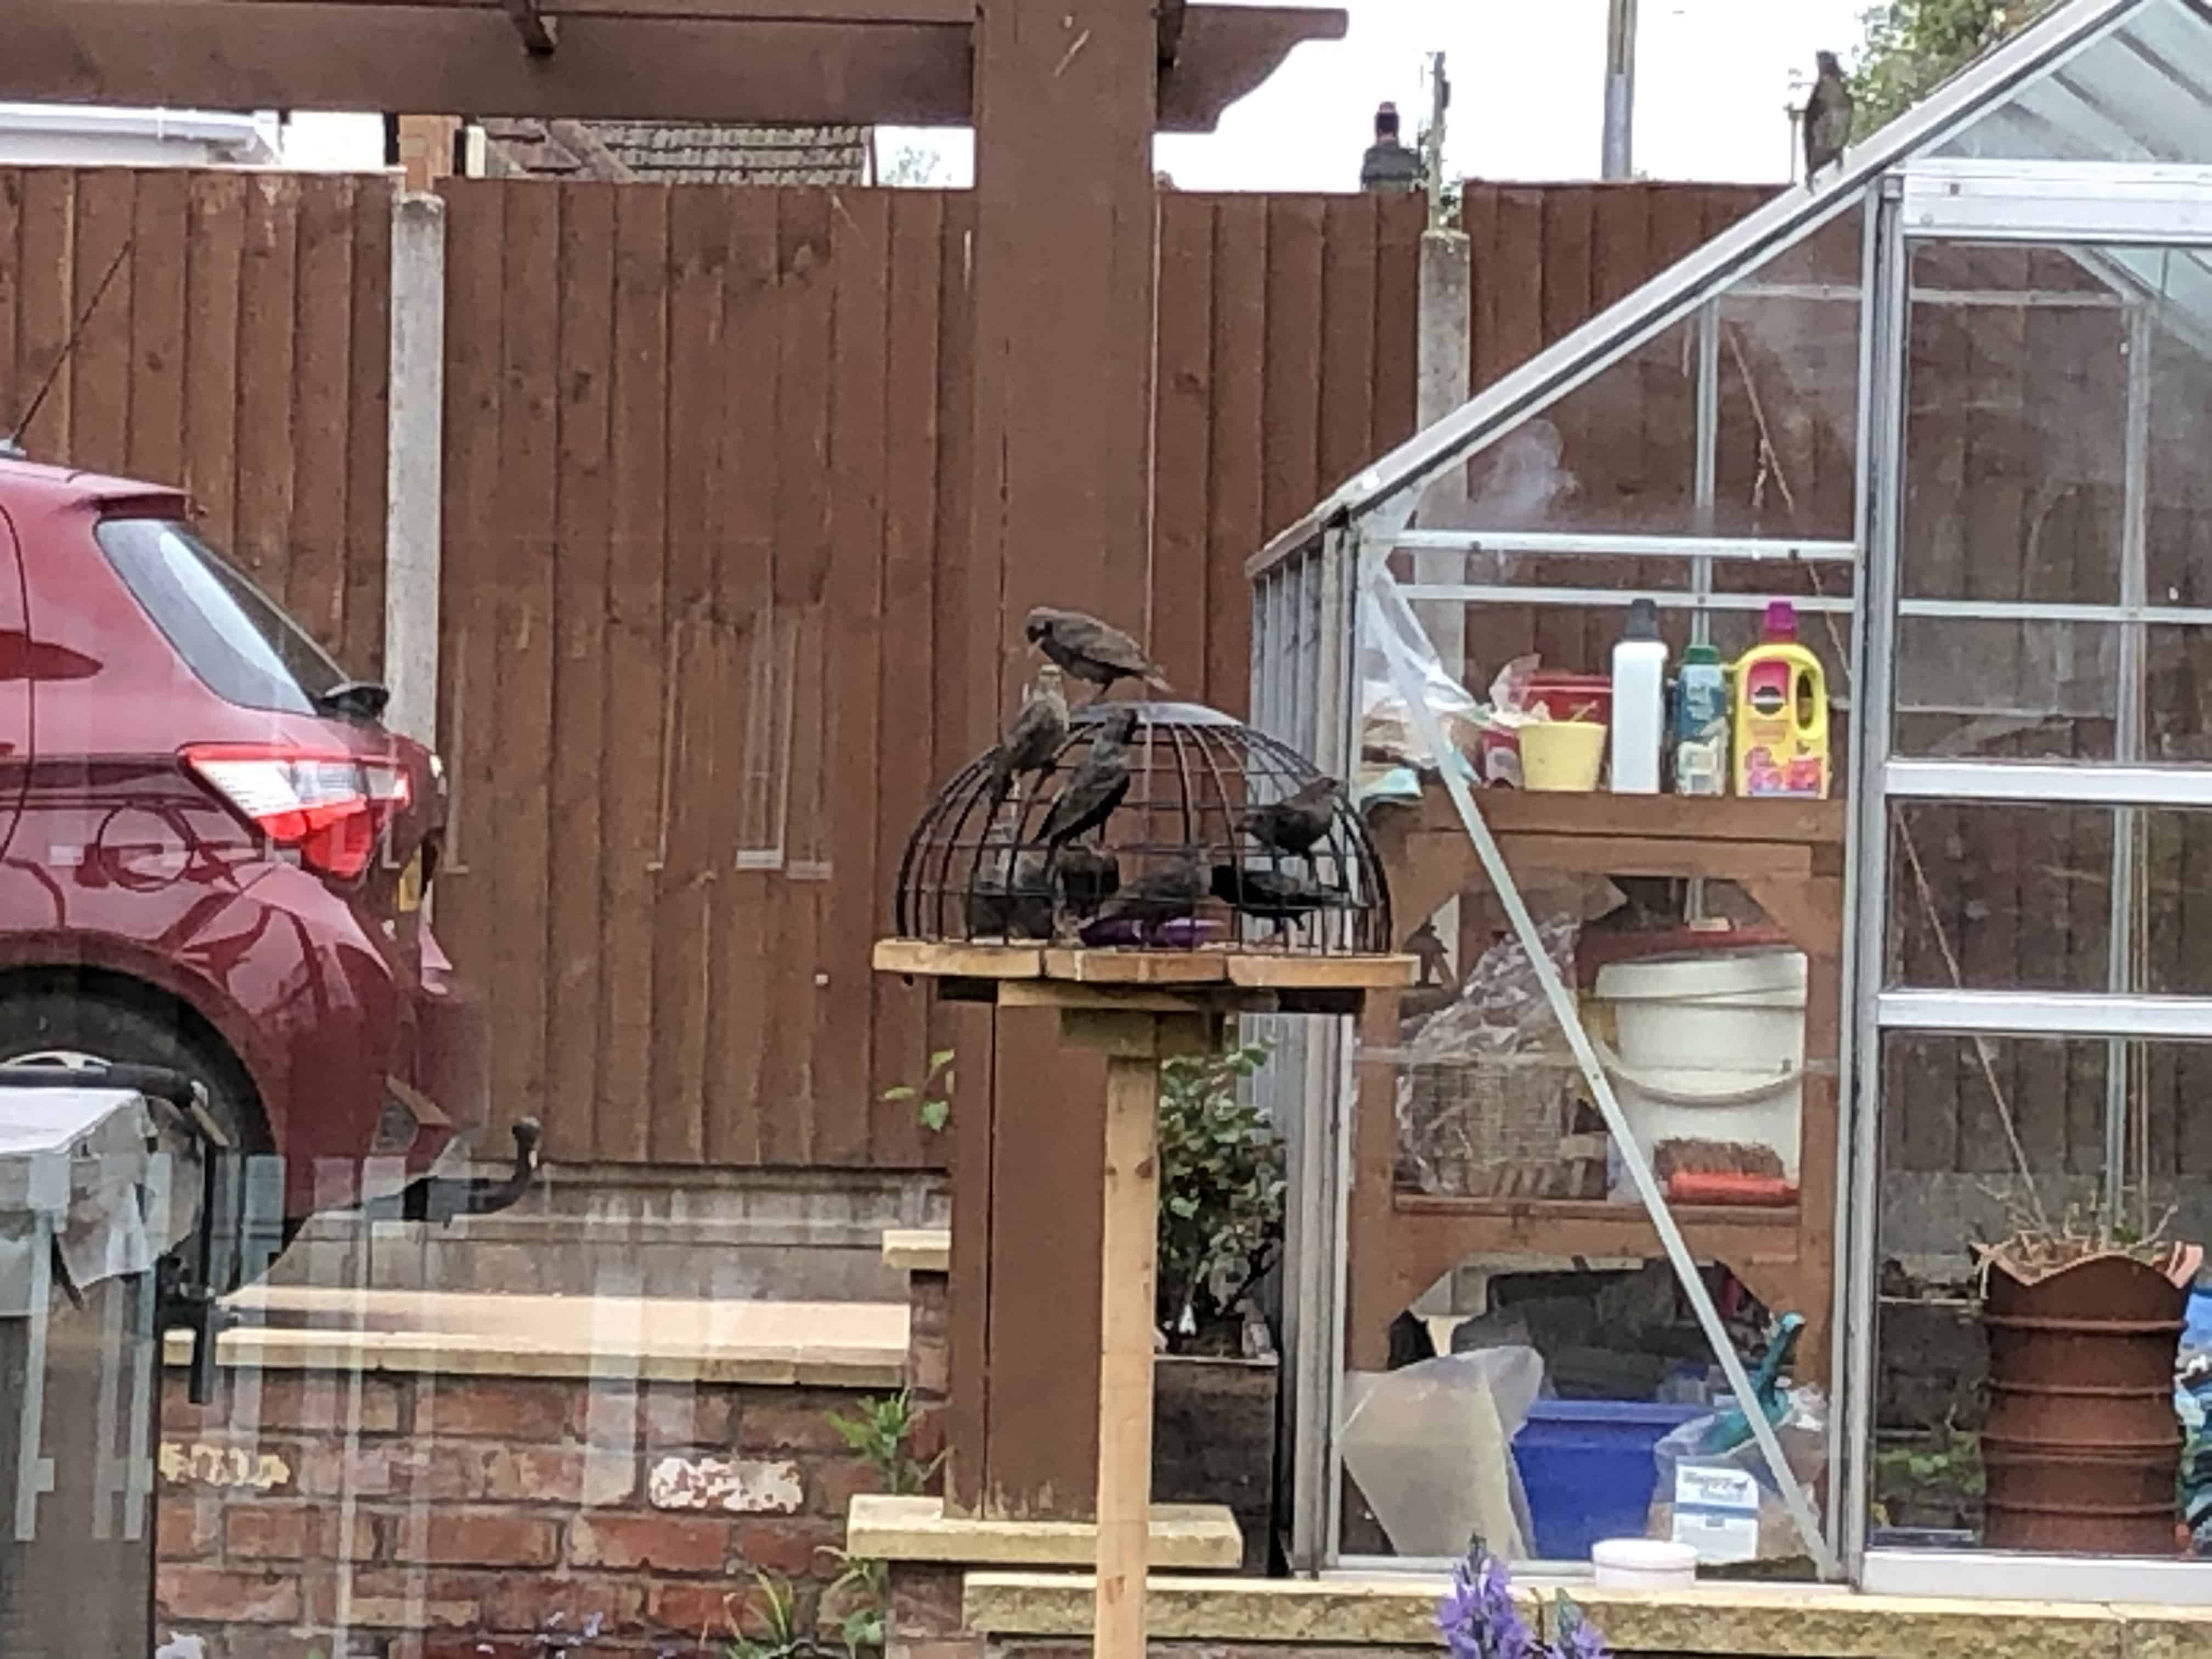 Starlings in the new cage feeder